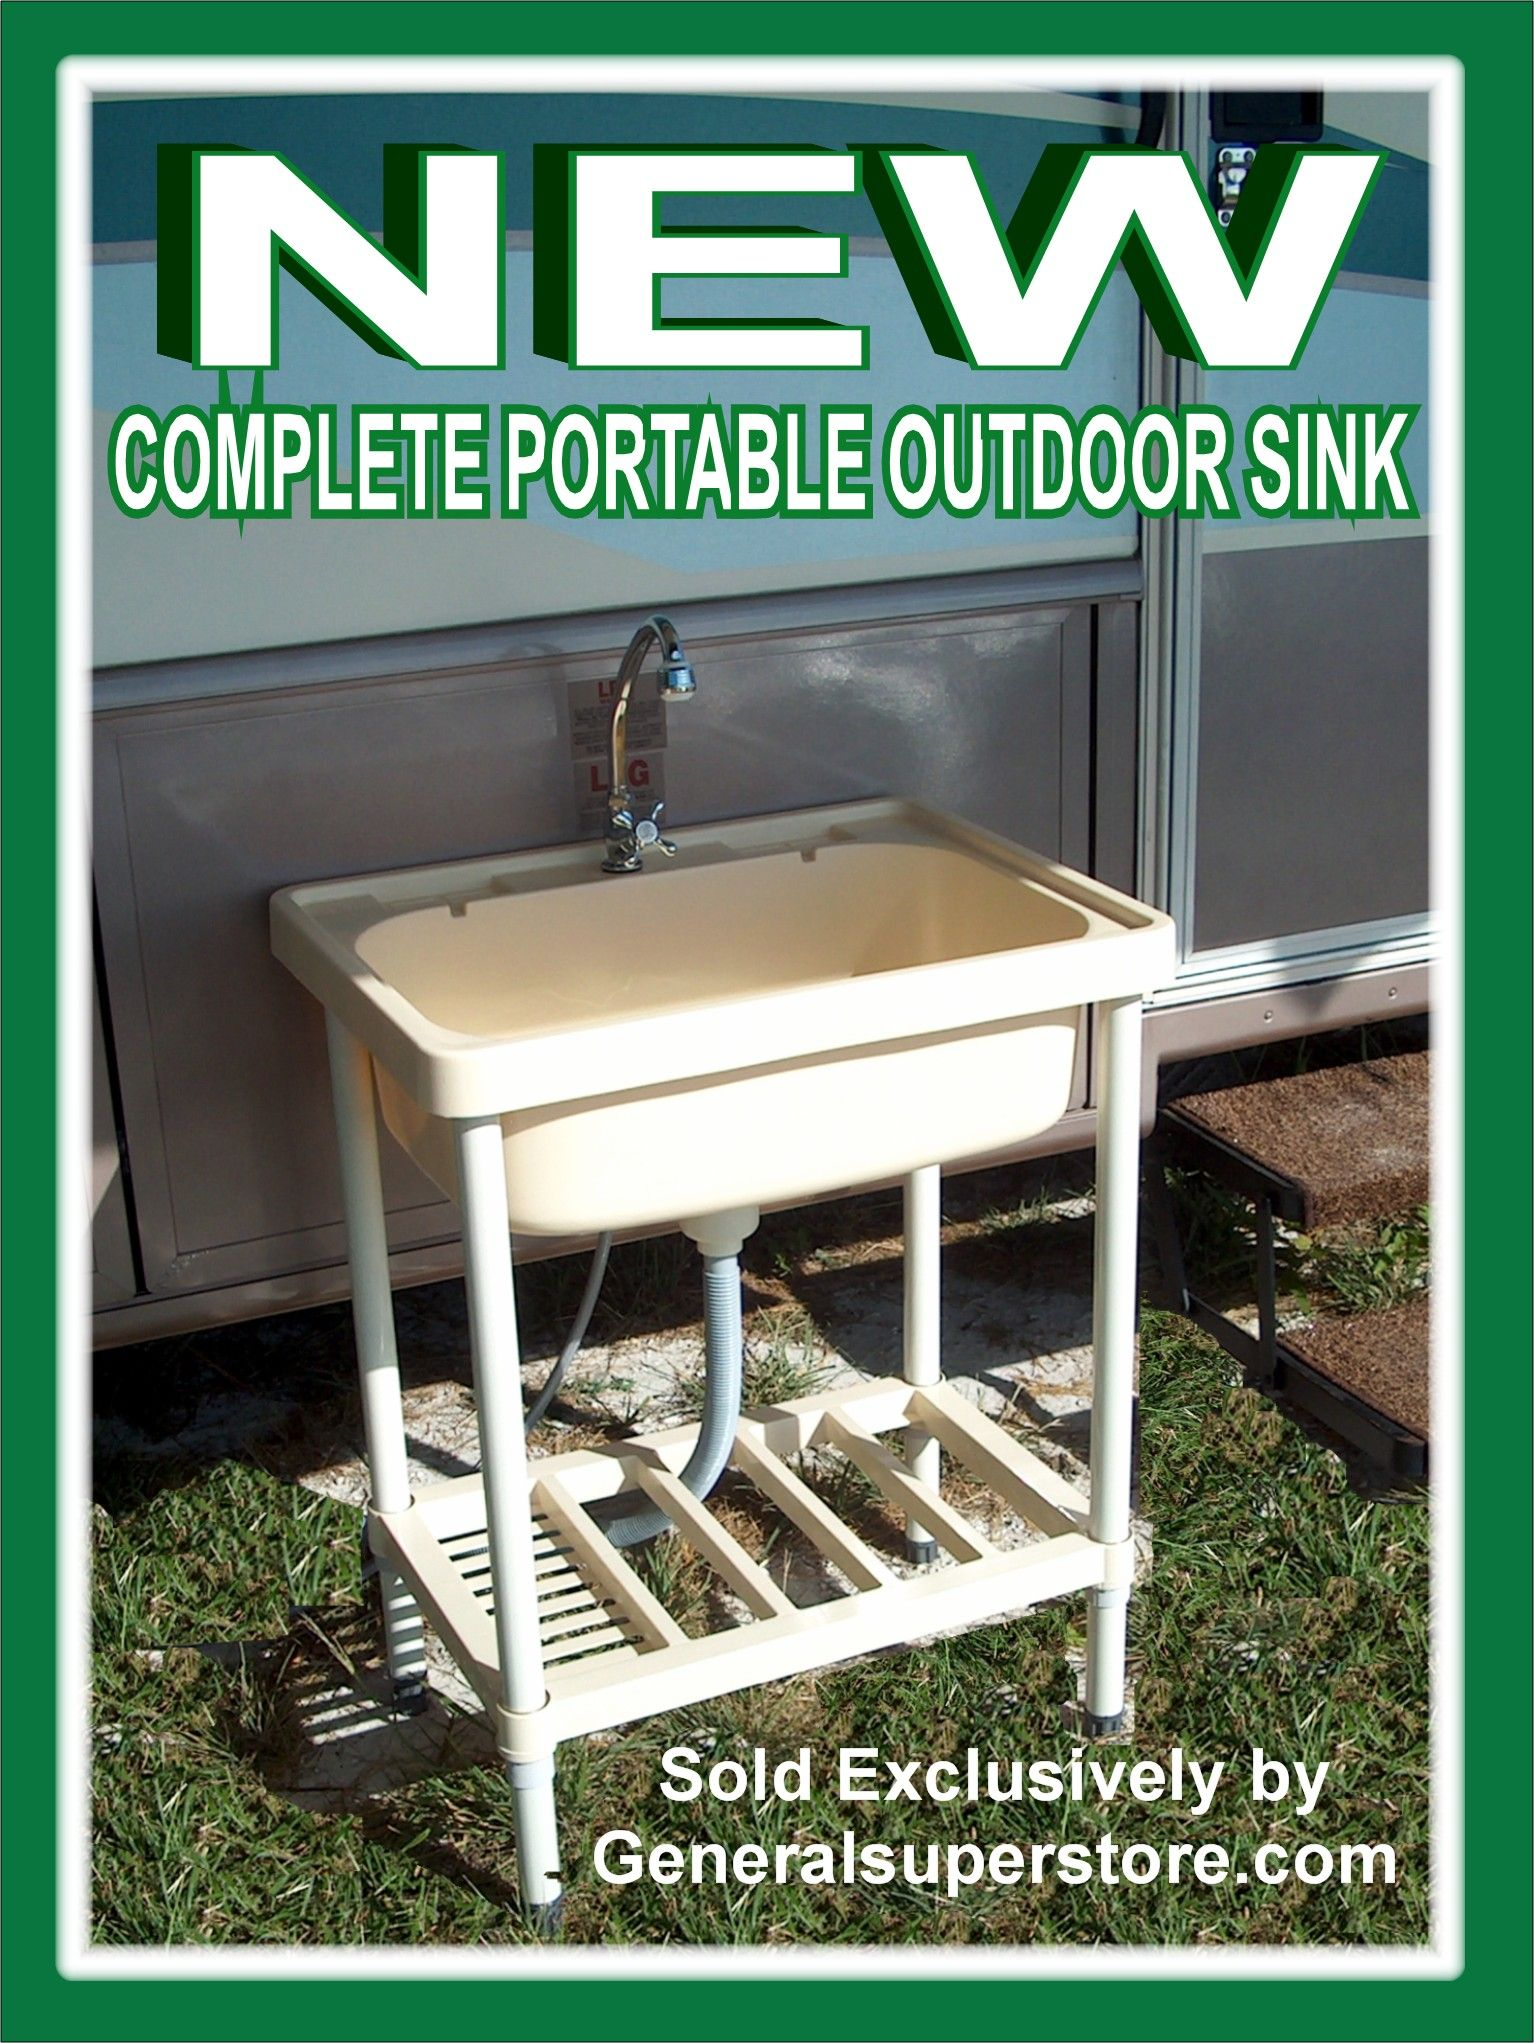 because the cool instant outdoor sink is not being sold any more